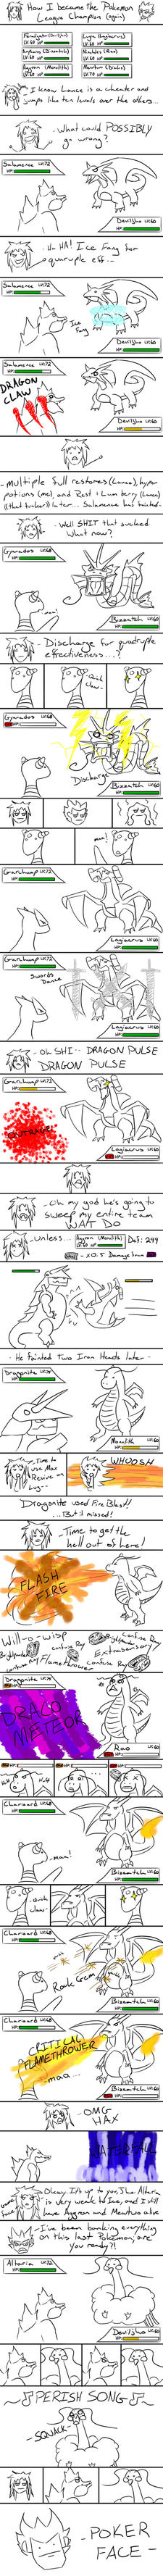 How I Became the Pokemon League Champion (Again) by EternalxBond